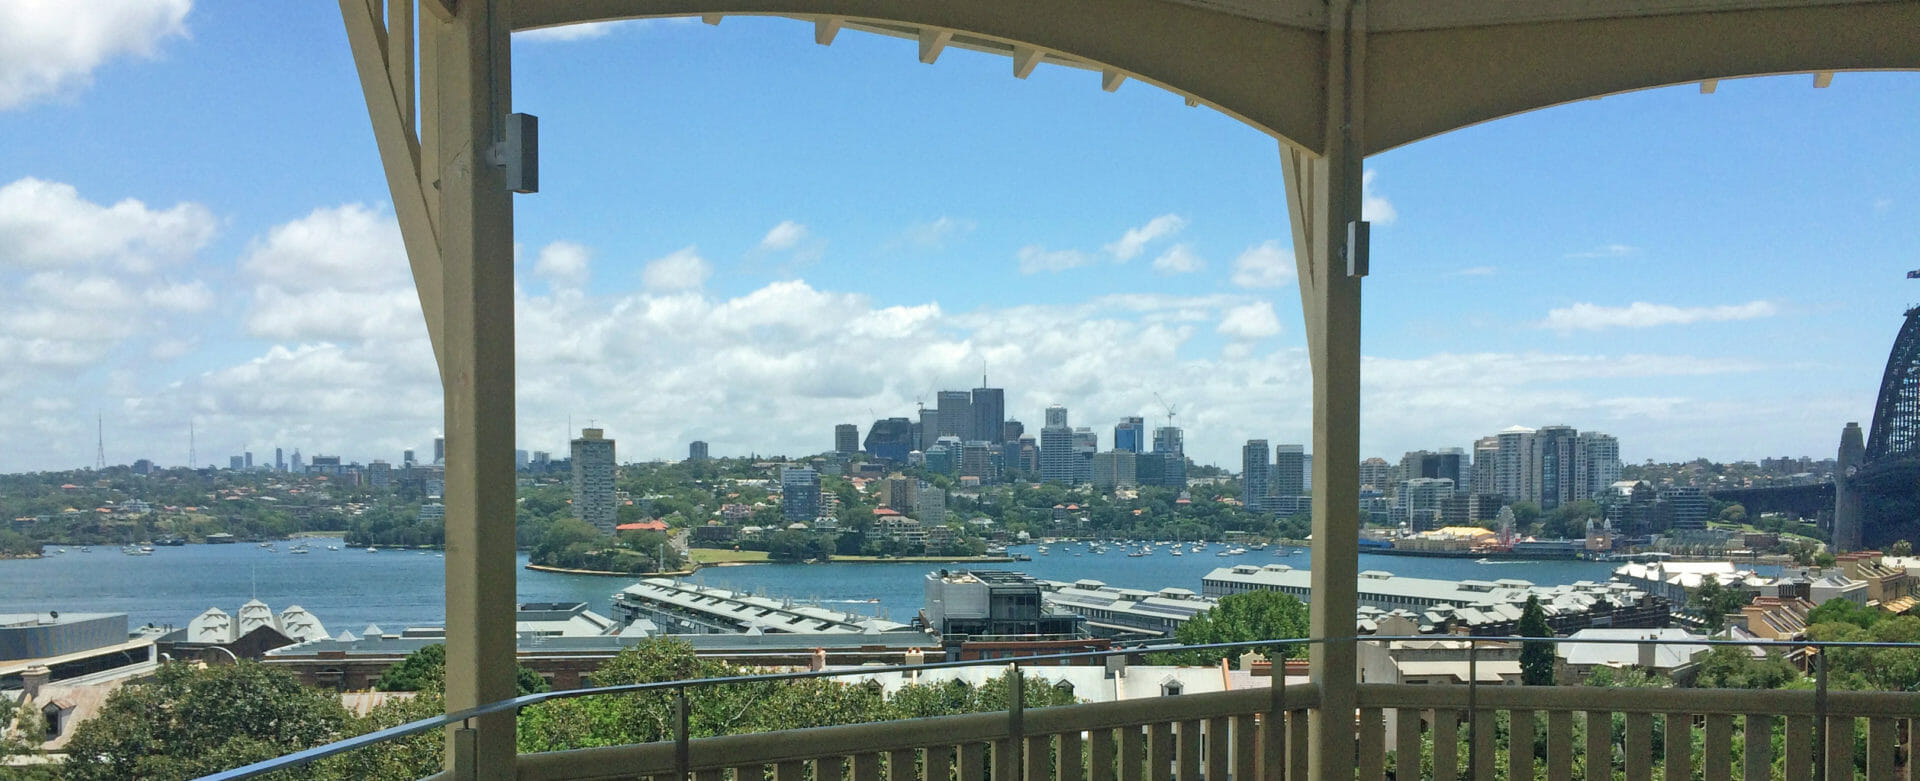 A view of Sydney from Observatory Hill. Moving to Sydney is expensive if you want views like this